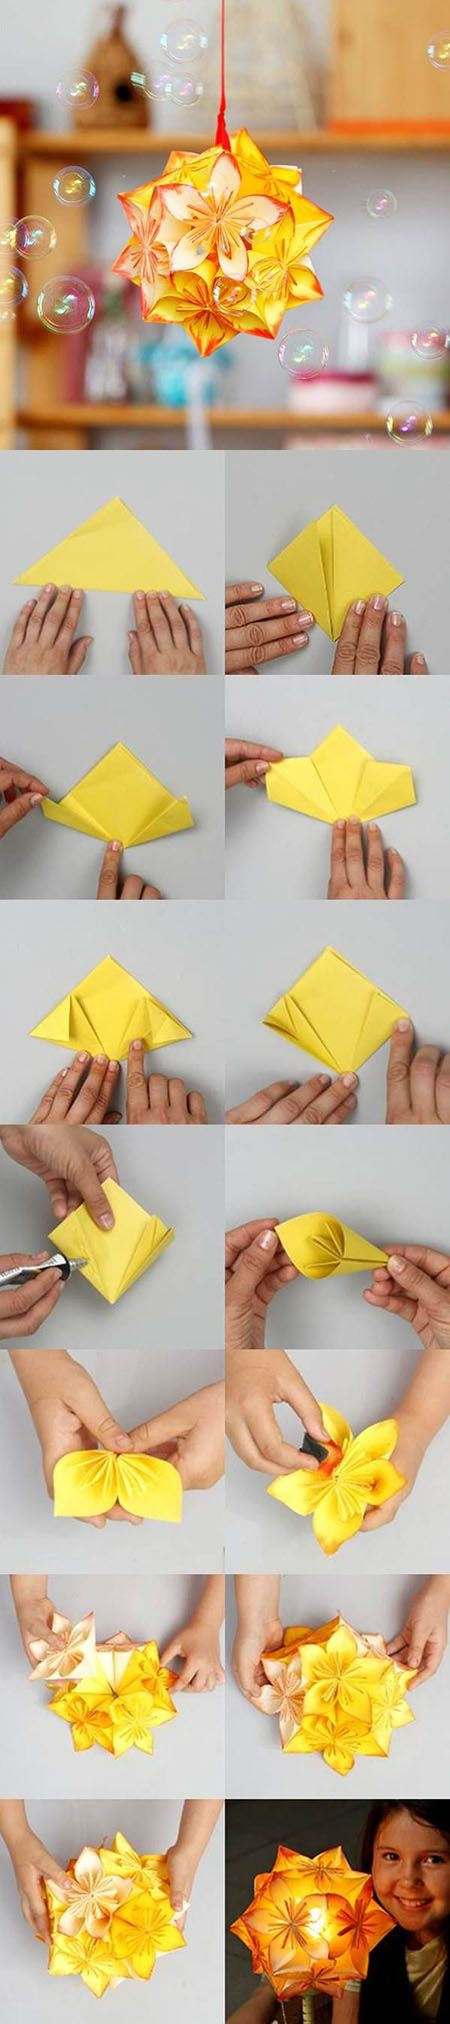 DIY Origami Kusudama Decoration | DIY & Crafts Tutorials